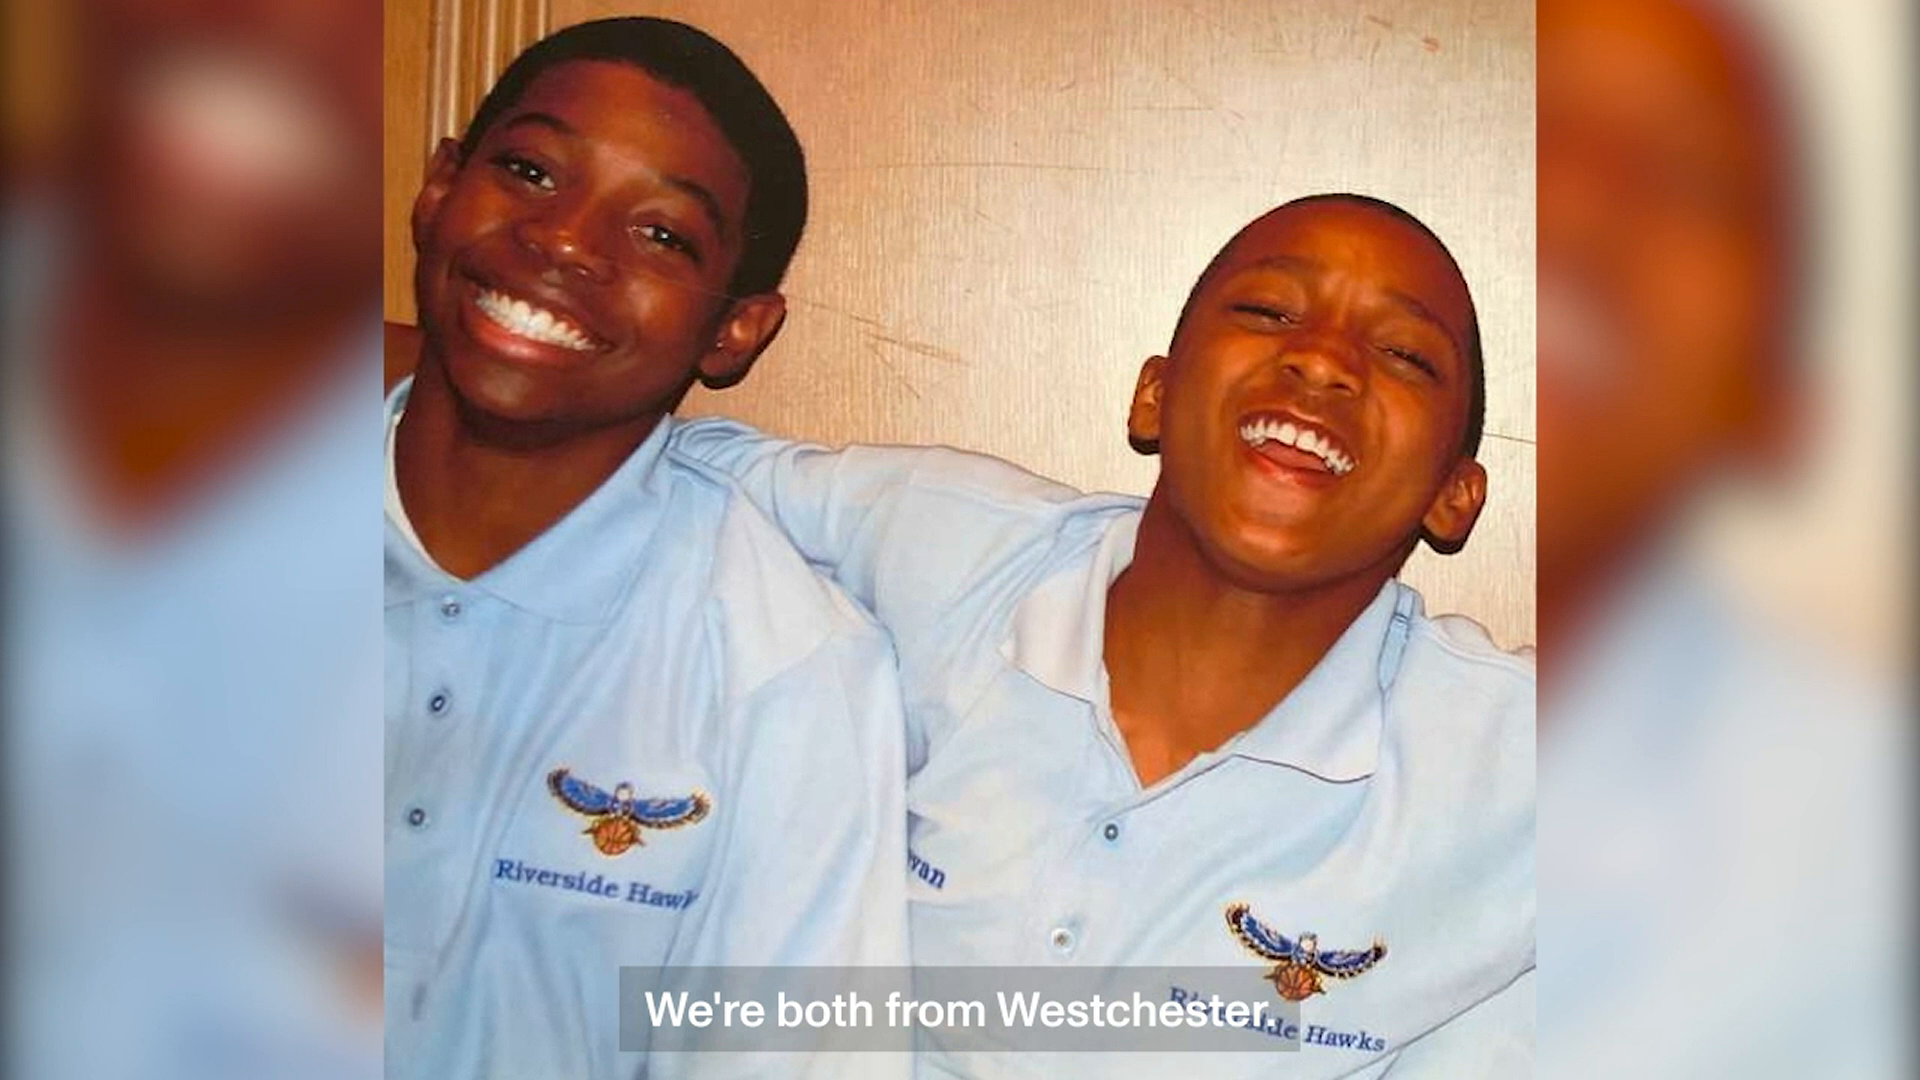 Donovan & Eric Paschall reflect on being teammates as kids